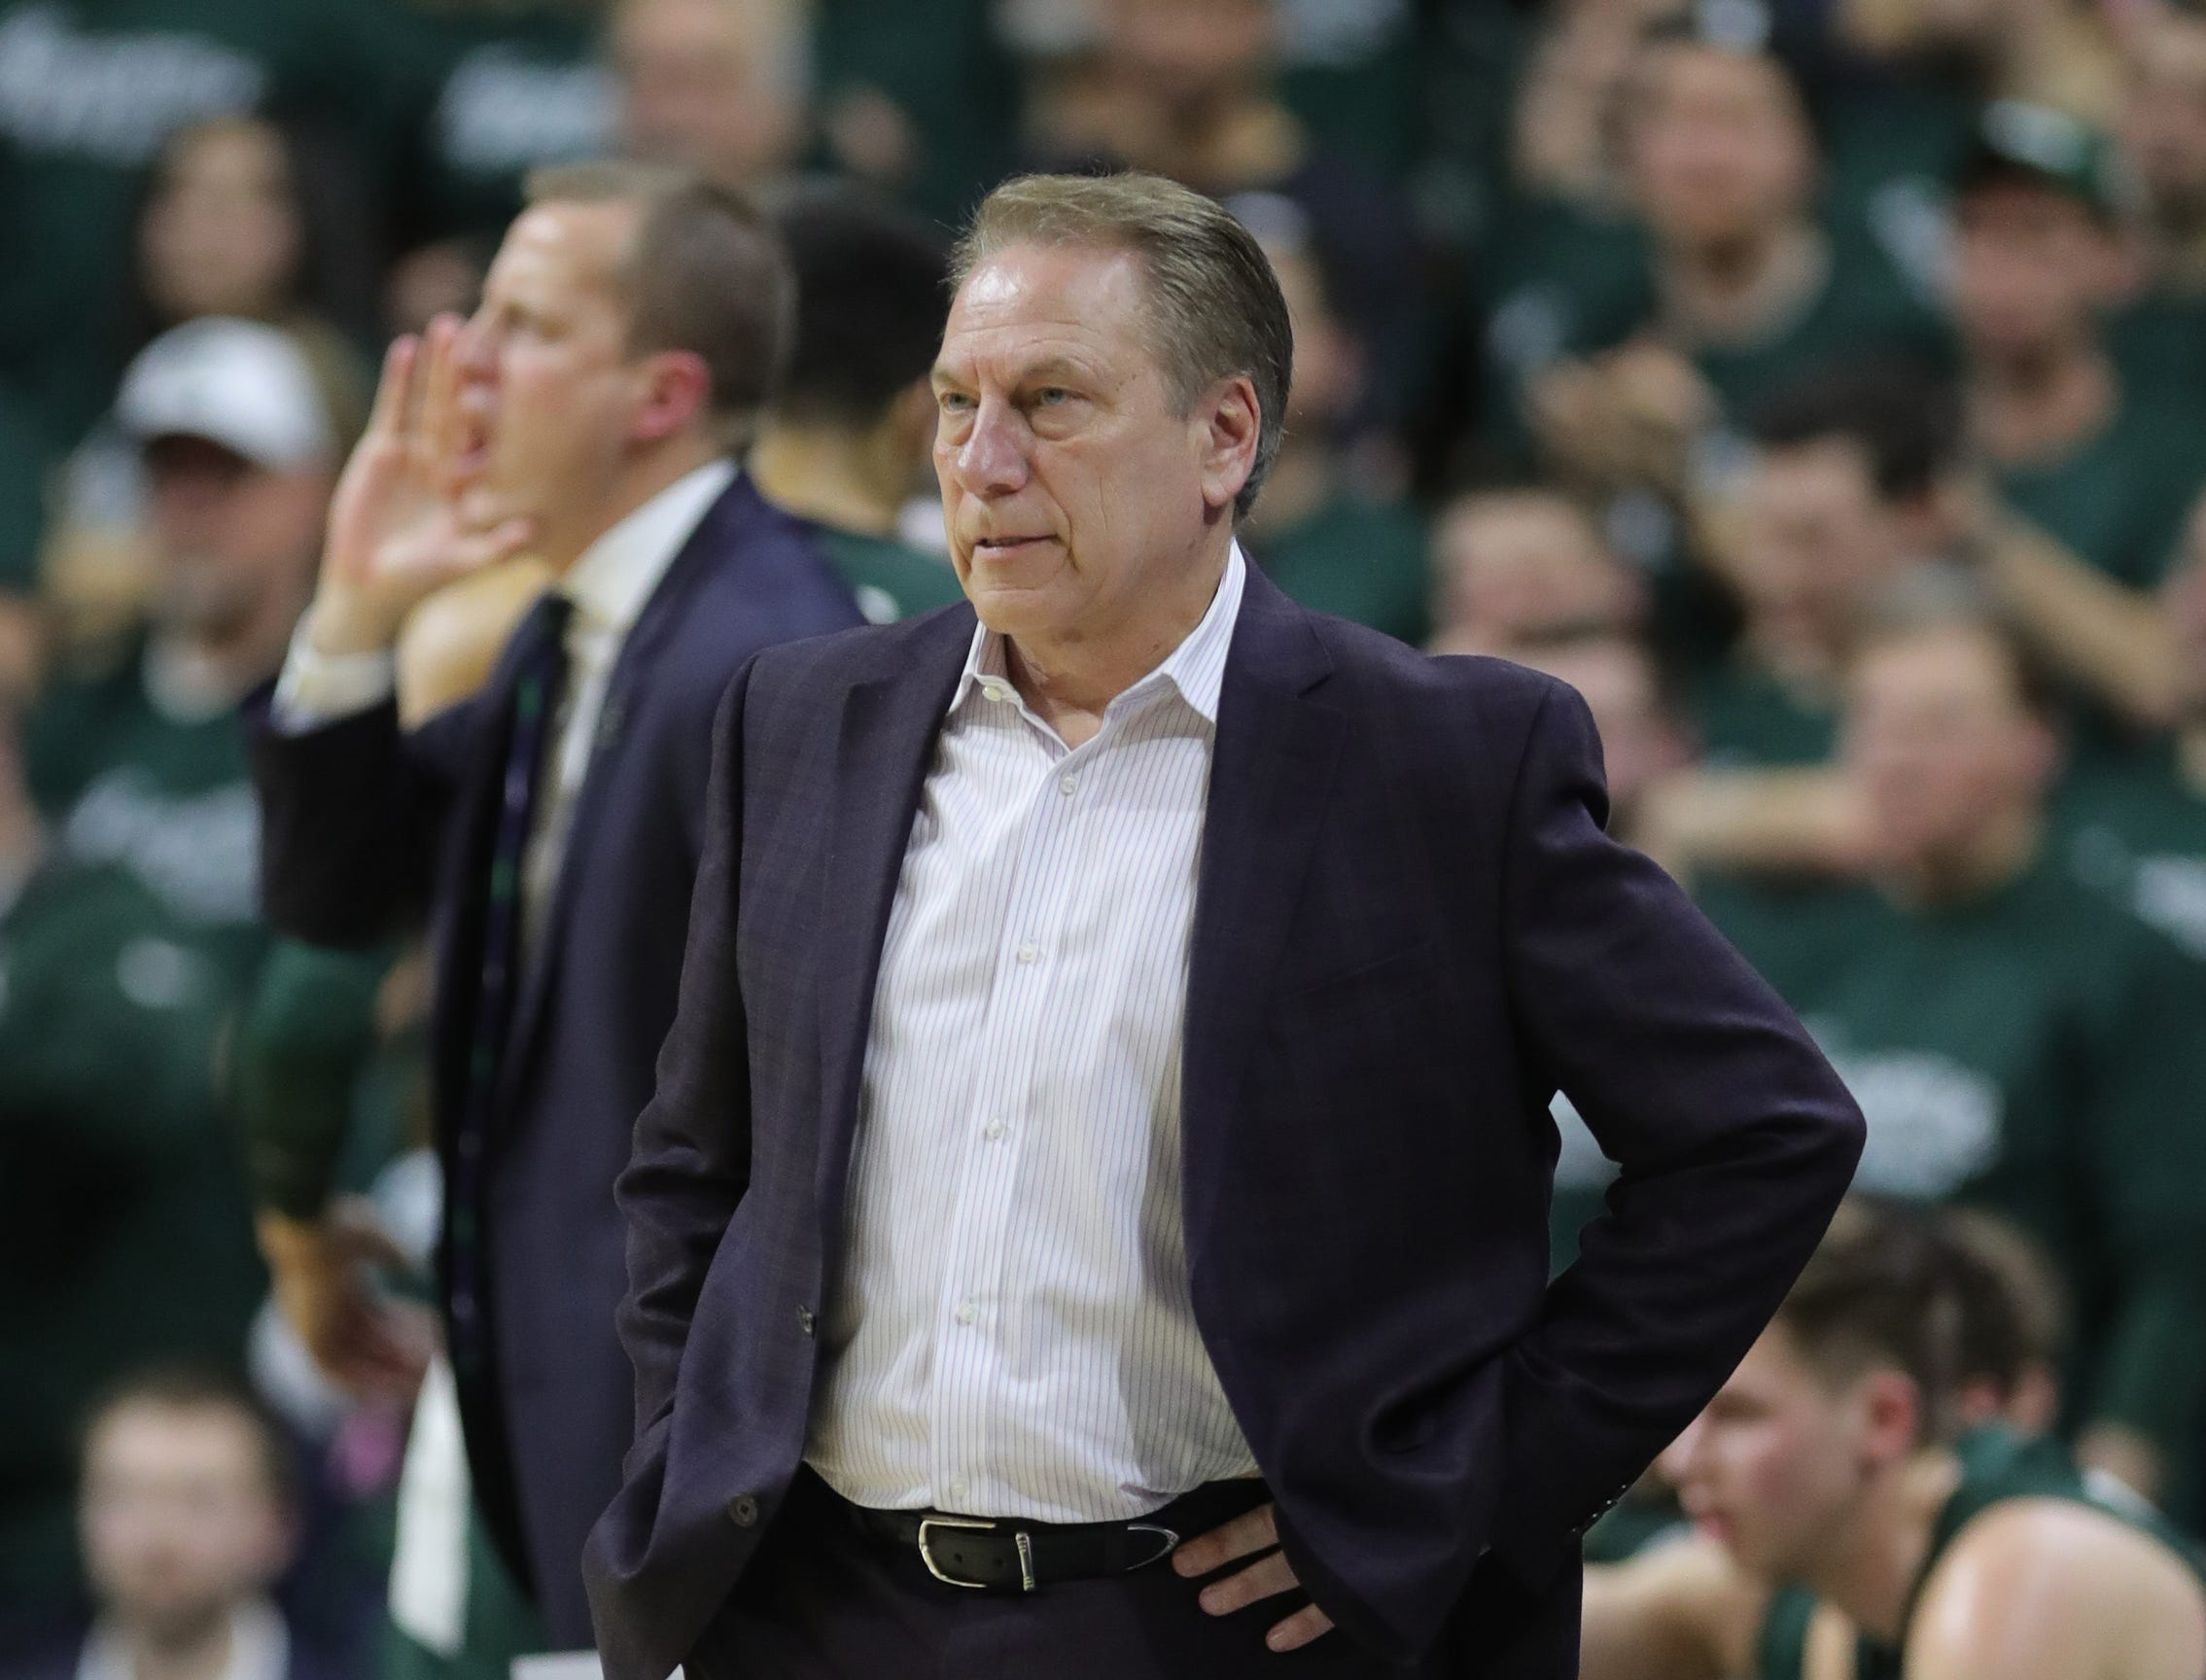 Michigan State head coach Tom Izzo on the bench during first half action against Nebraska Tuesday, March 5, 2019 at the Breslin Center in East Lansing, Mich.